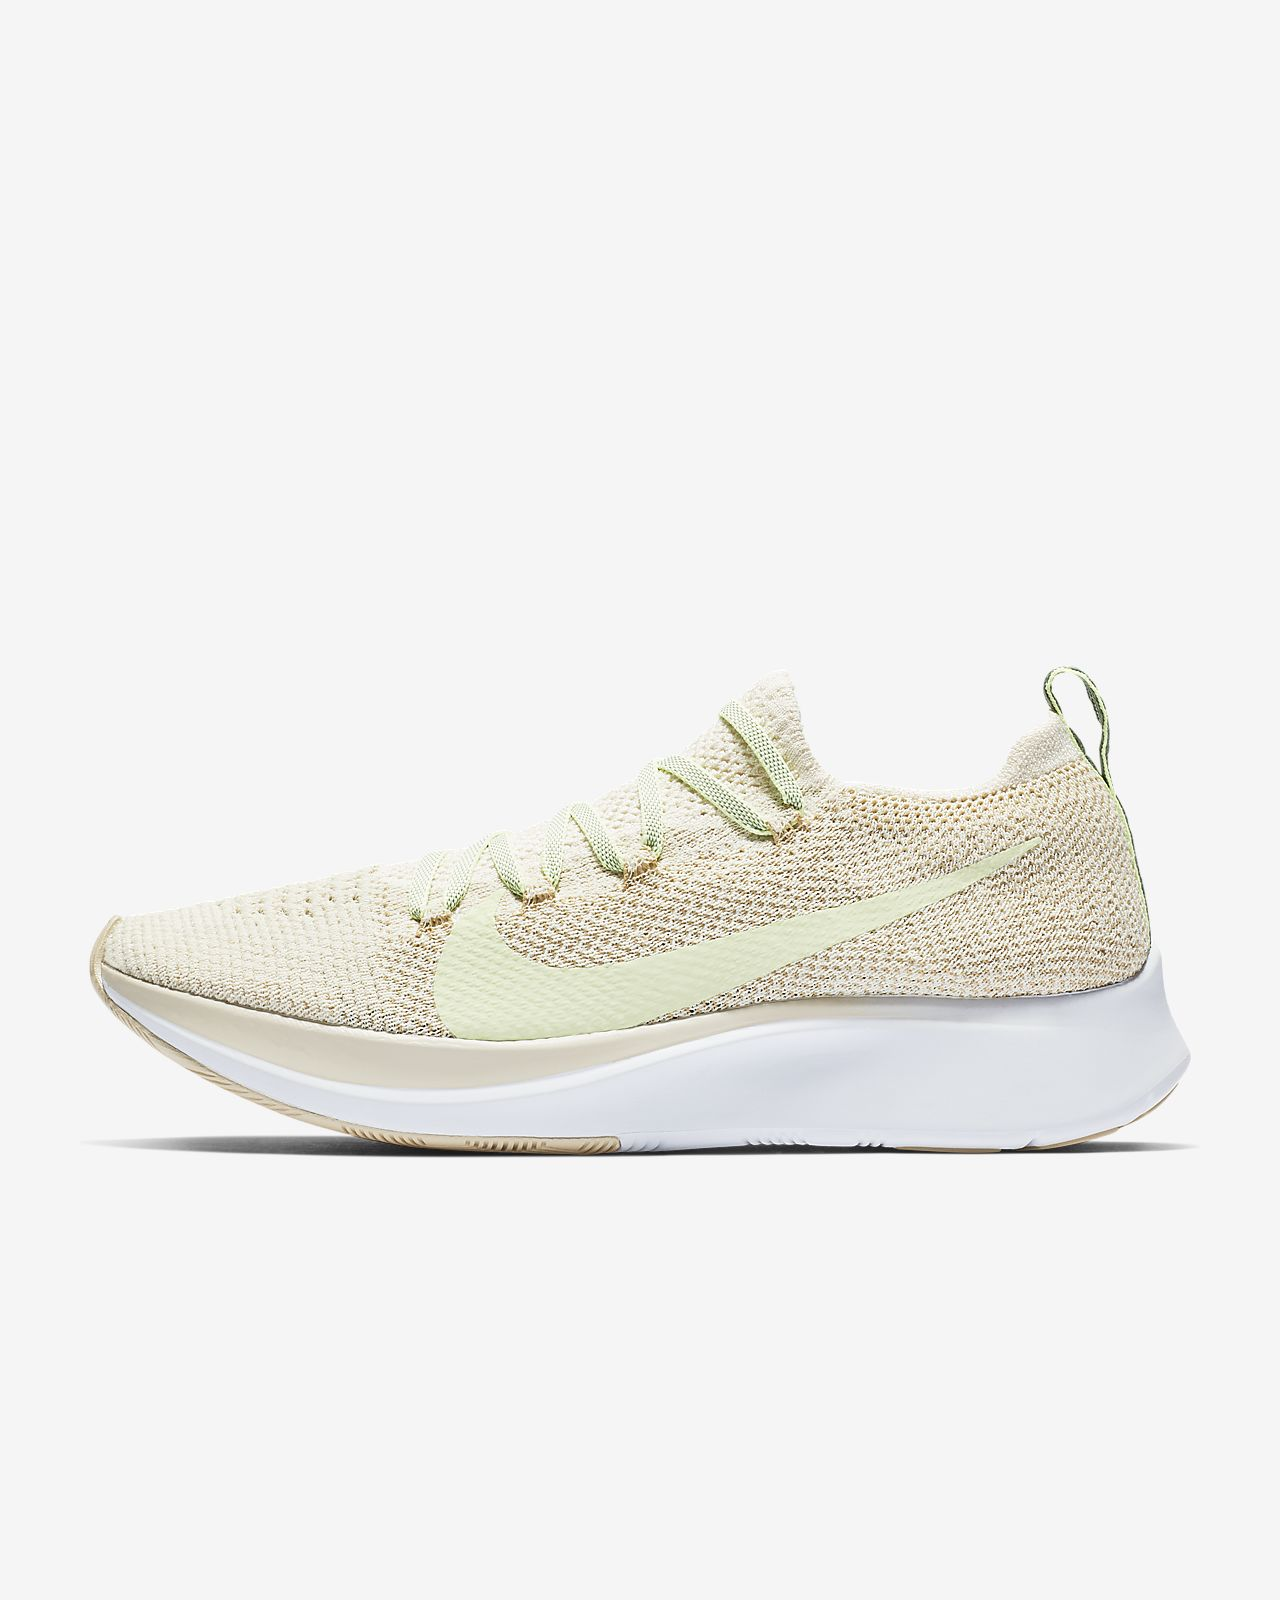 Fly Running Shoe Women's Flyknit Zoom Nike PkTXOZui